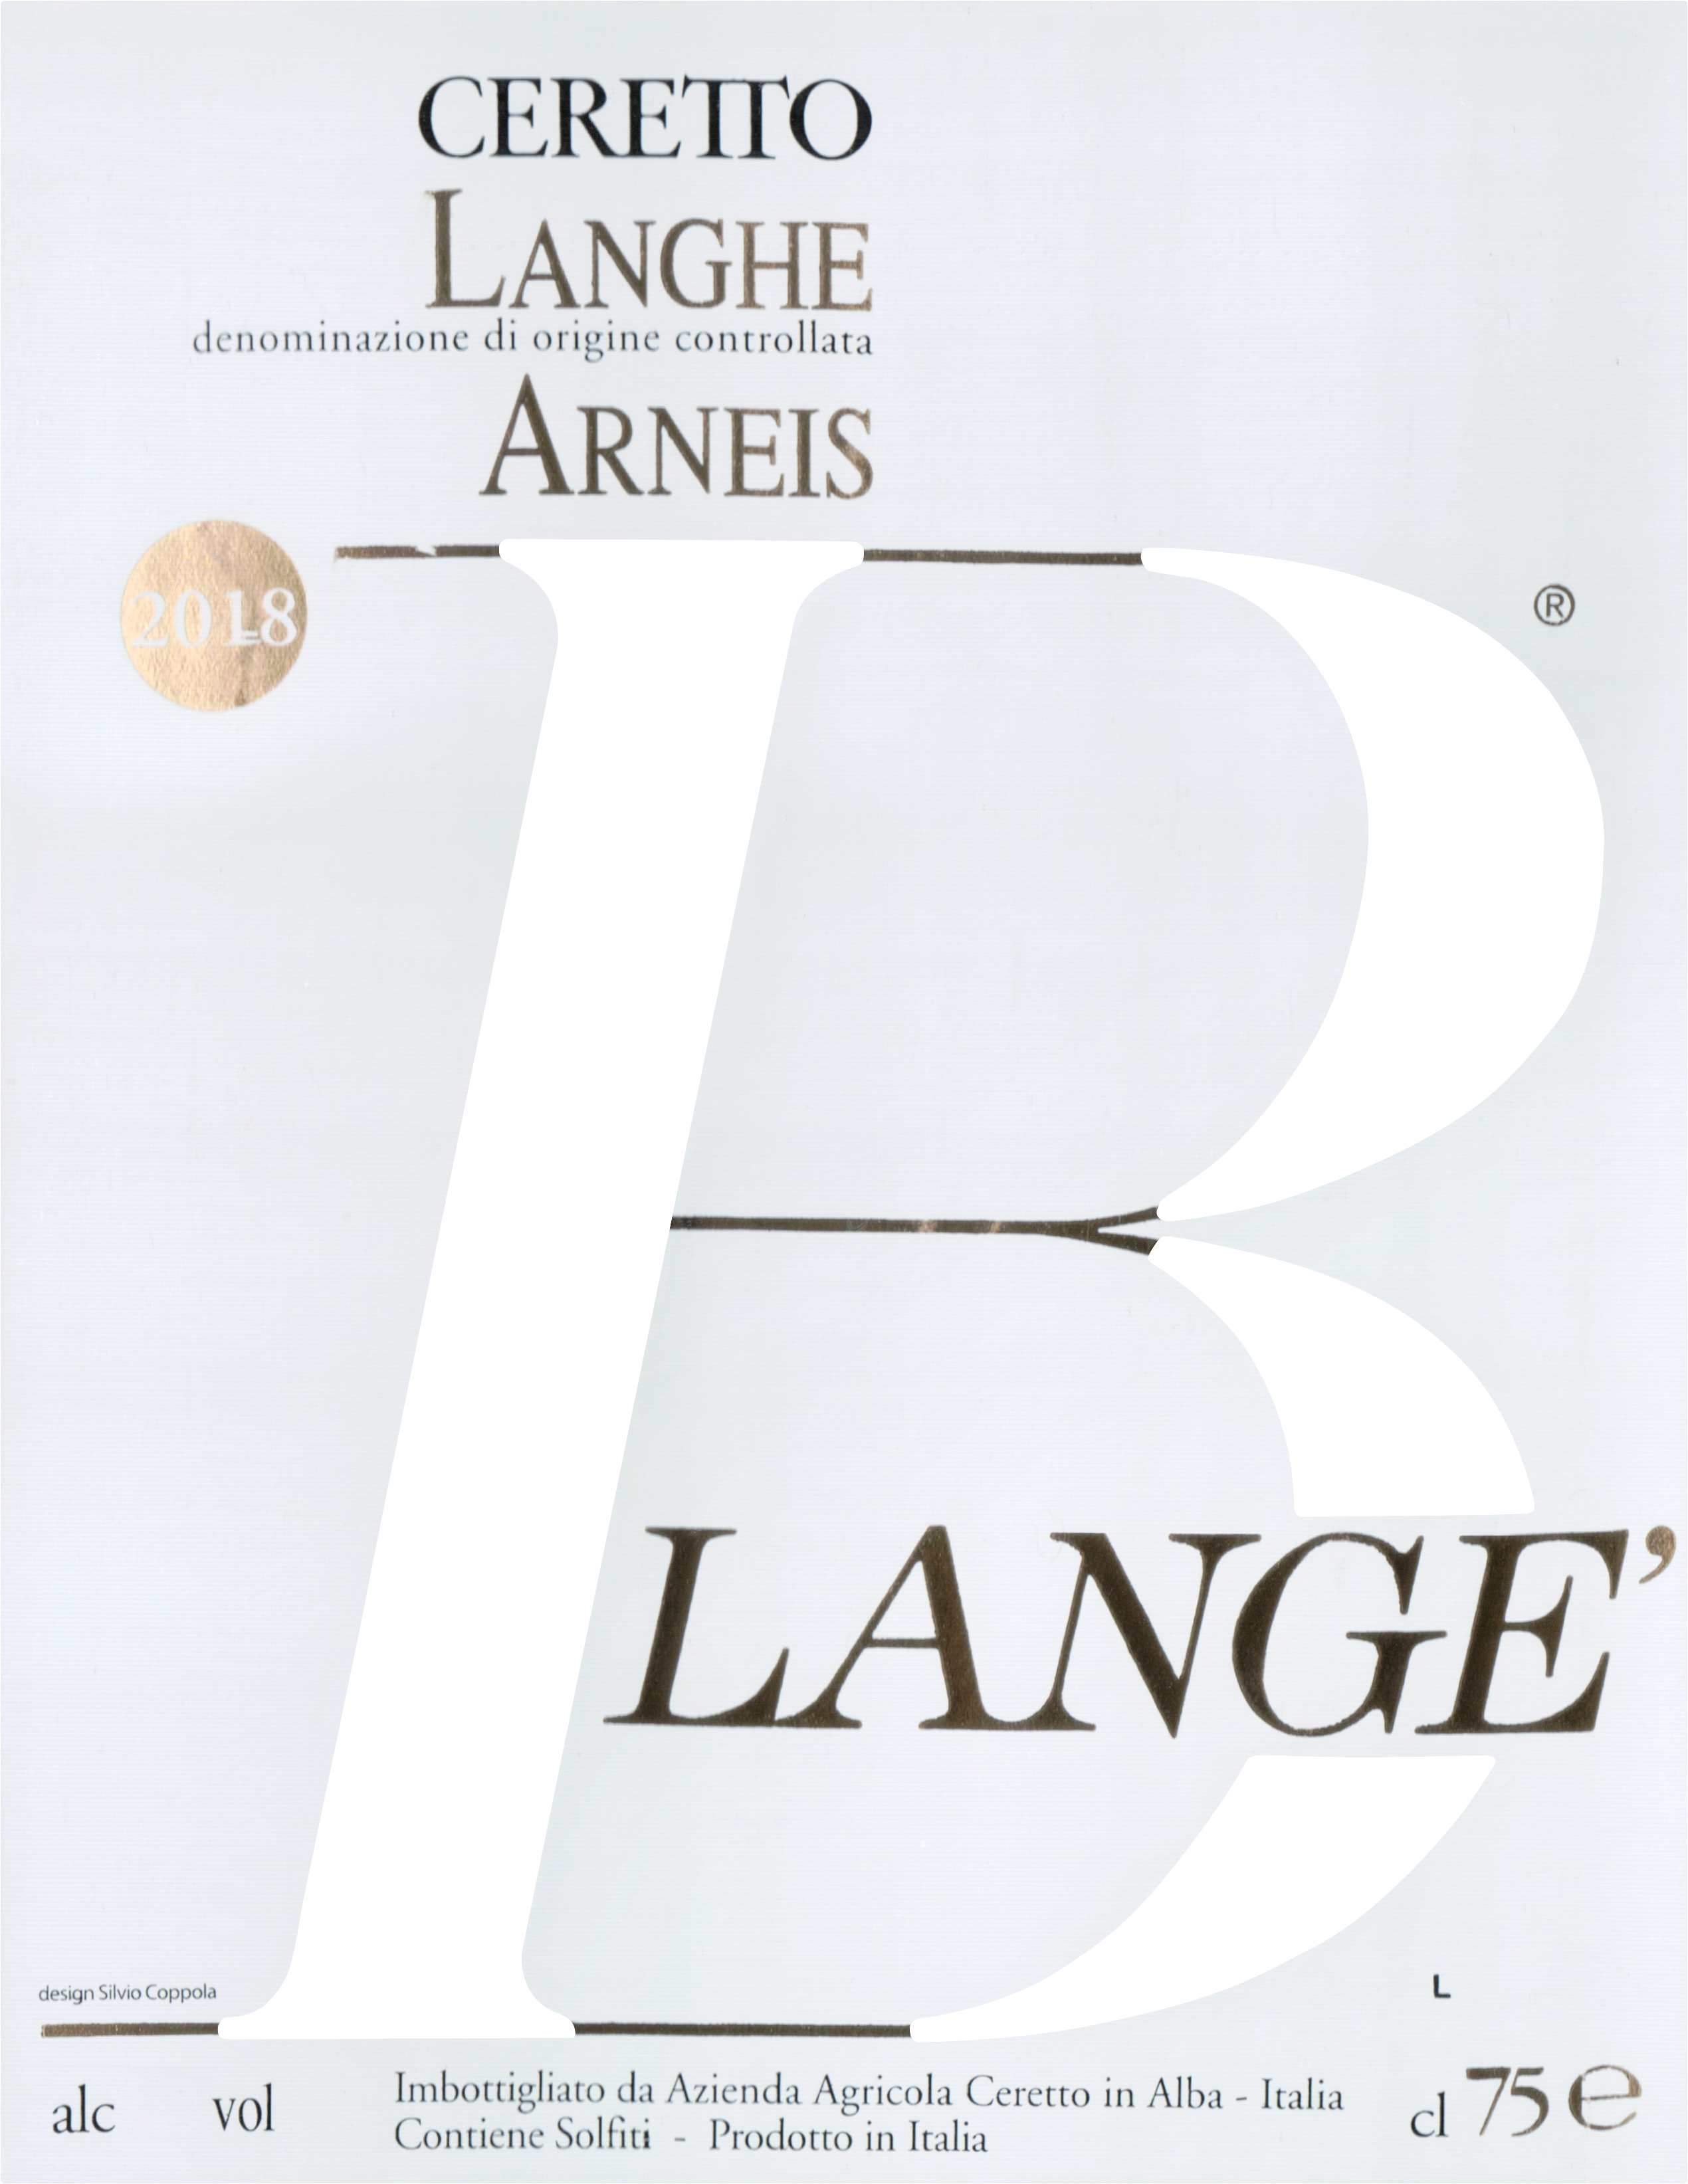 Ceretto Blange Arneis 2019